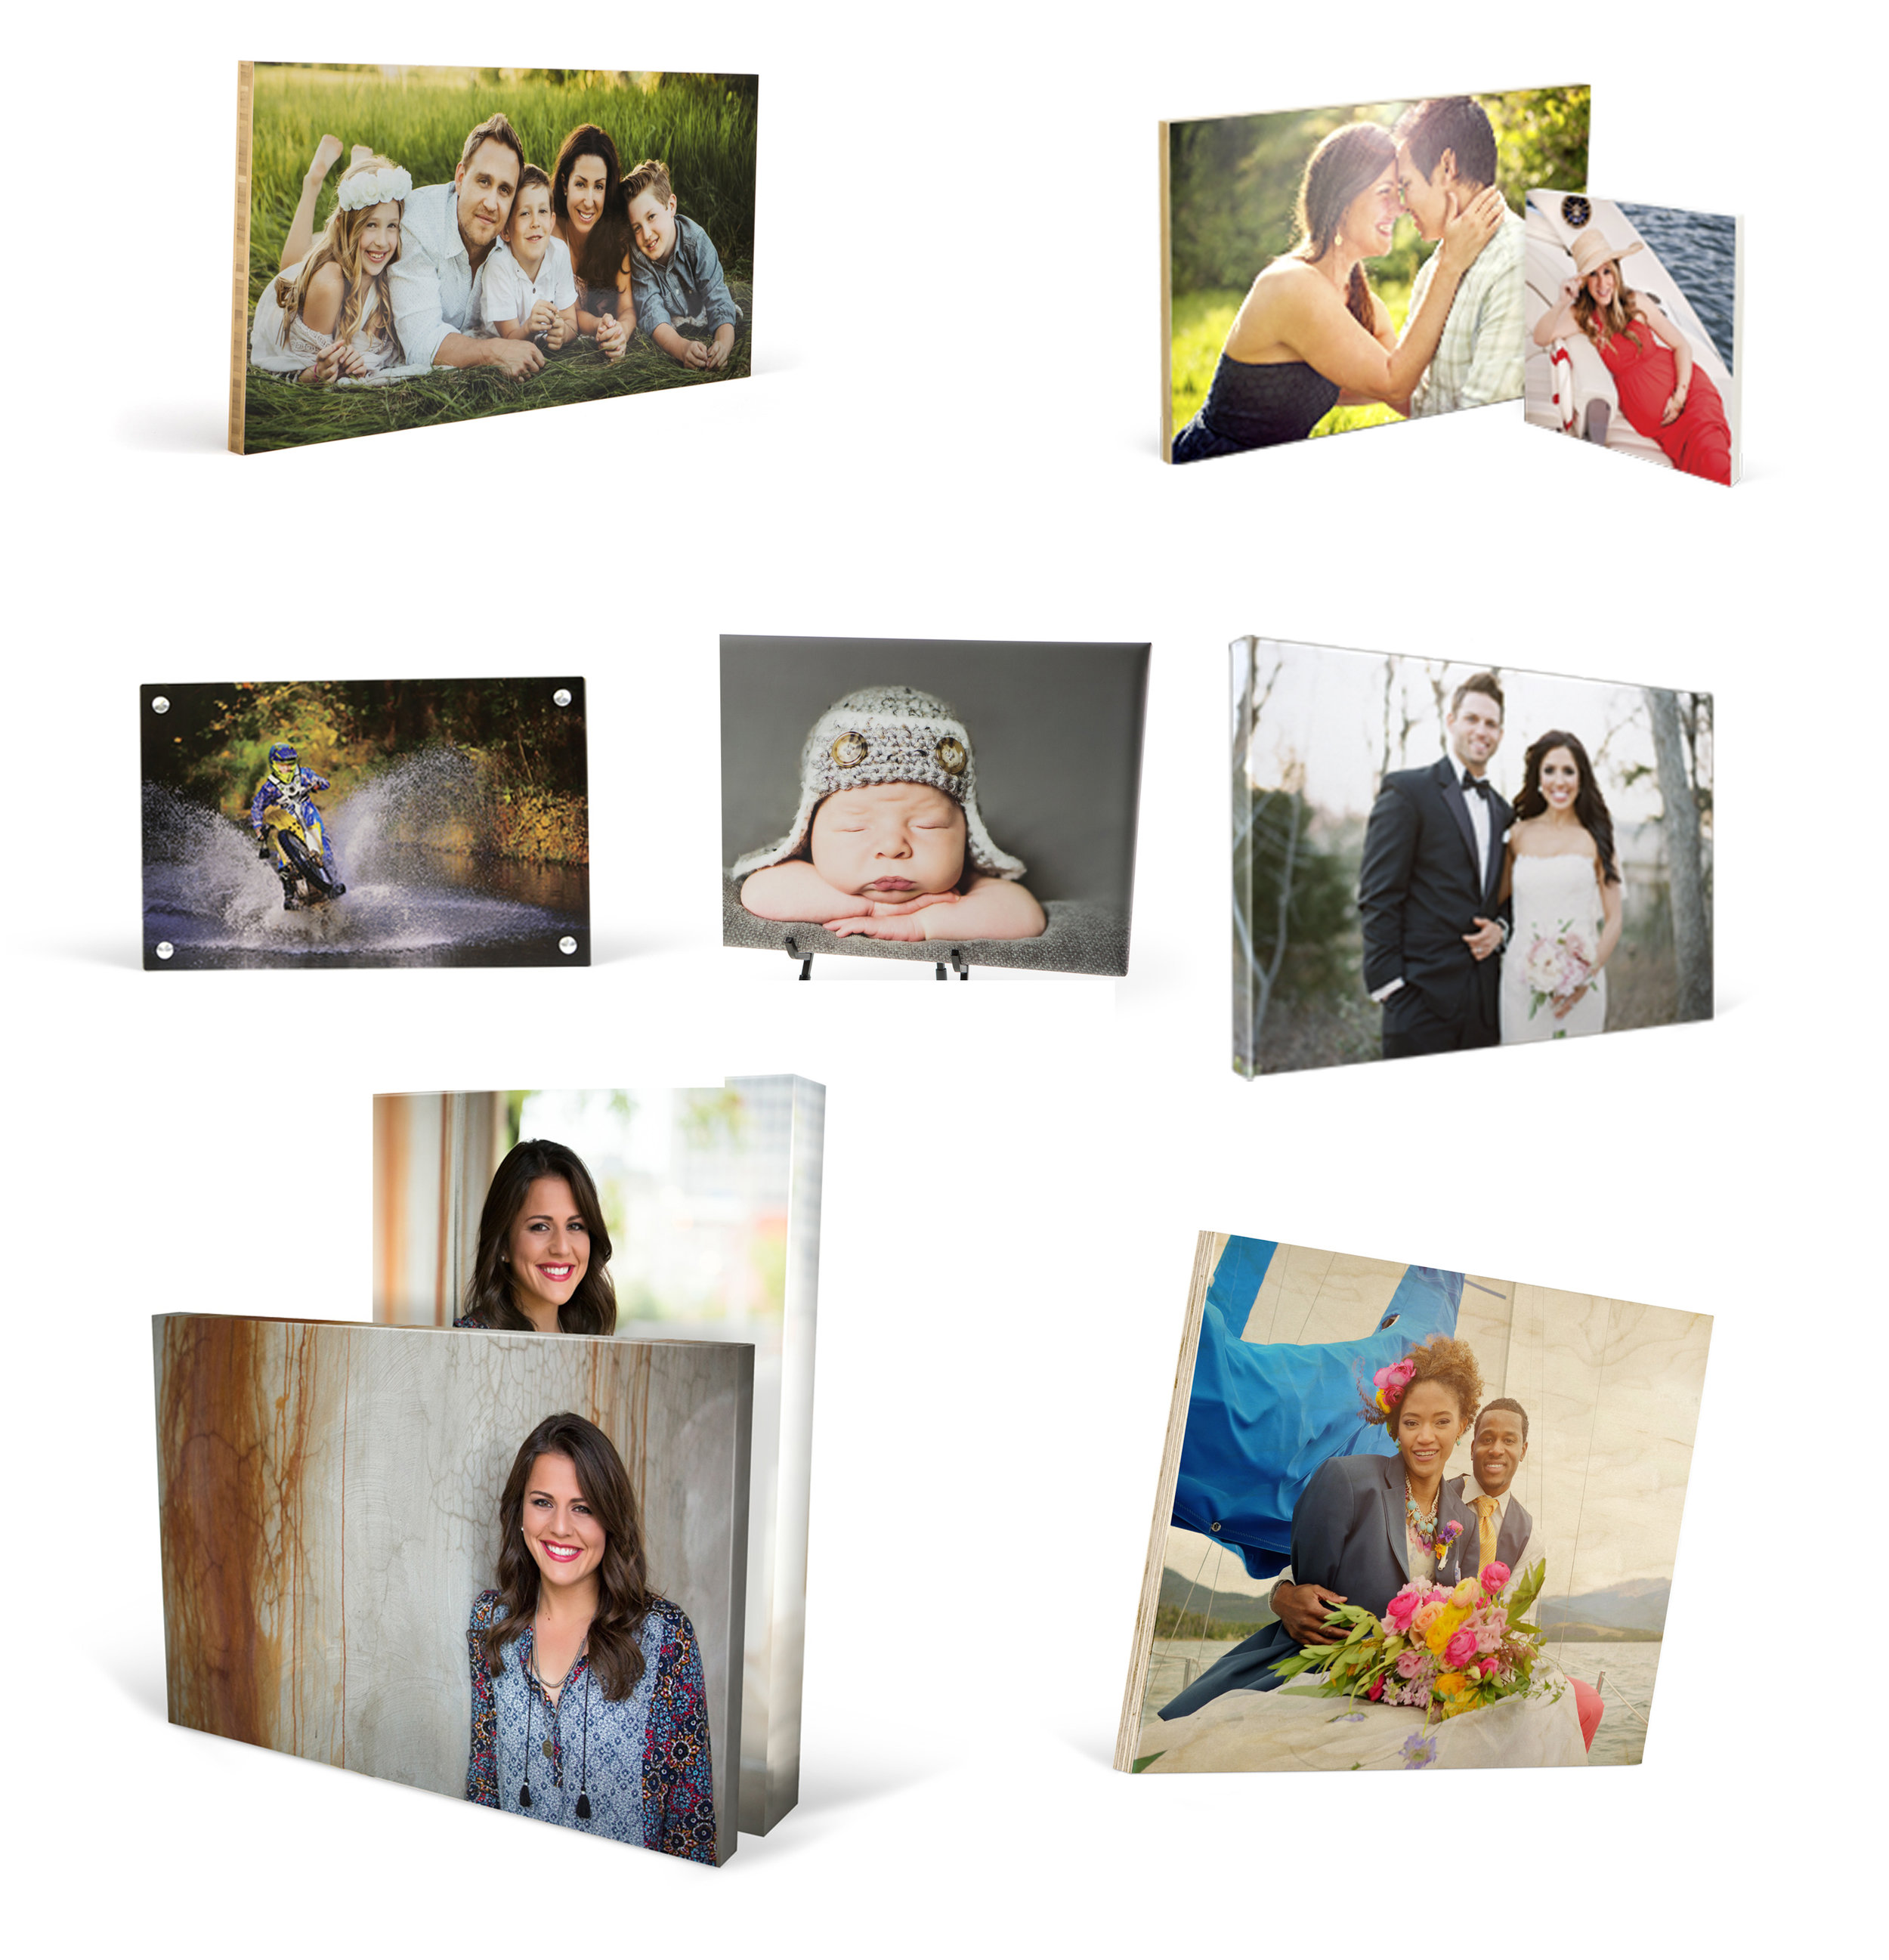 """WALL ARTS ART AVAILABLE IN MANY MEDIUMS and SIZES 5""""X 5"""" to 40""""X 60""""   Finish Options:   UV Protected Gallery Wraps  Metal Wall Art, Float Wraps  Wood Wall Art, Bamboo Panels  Fine Art Ink Jet on Canvas  Fine Art Photo Printed Wraps"""